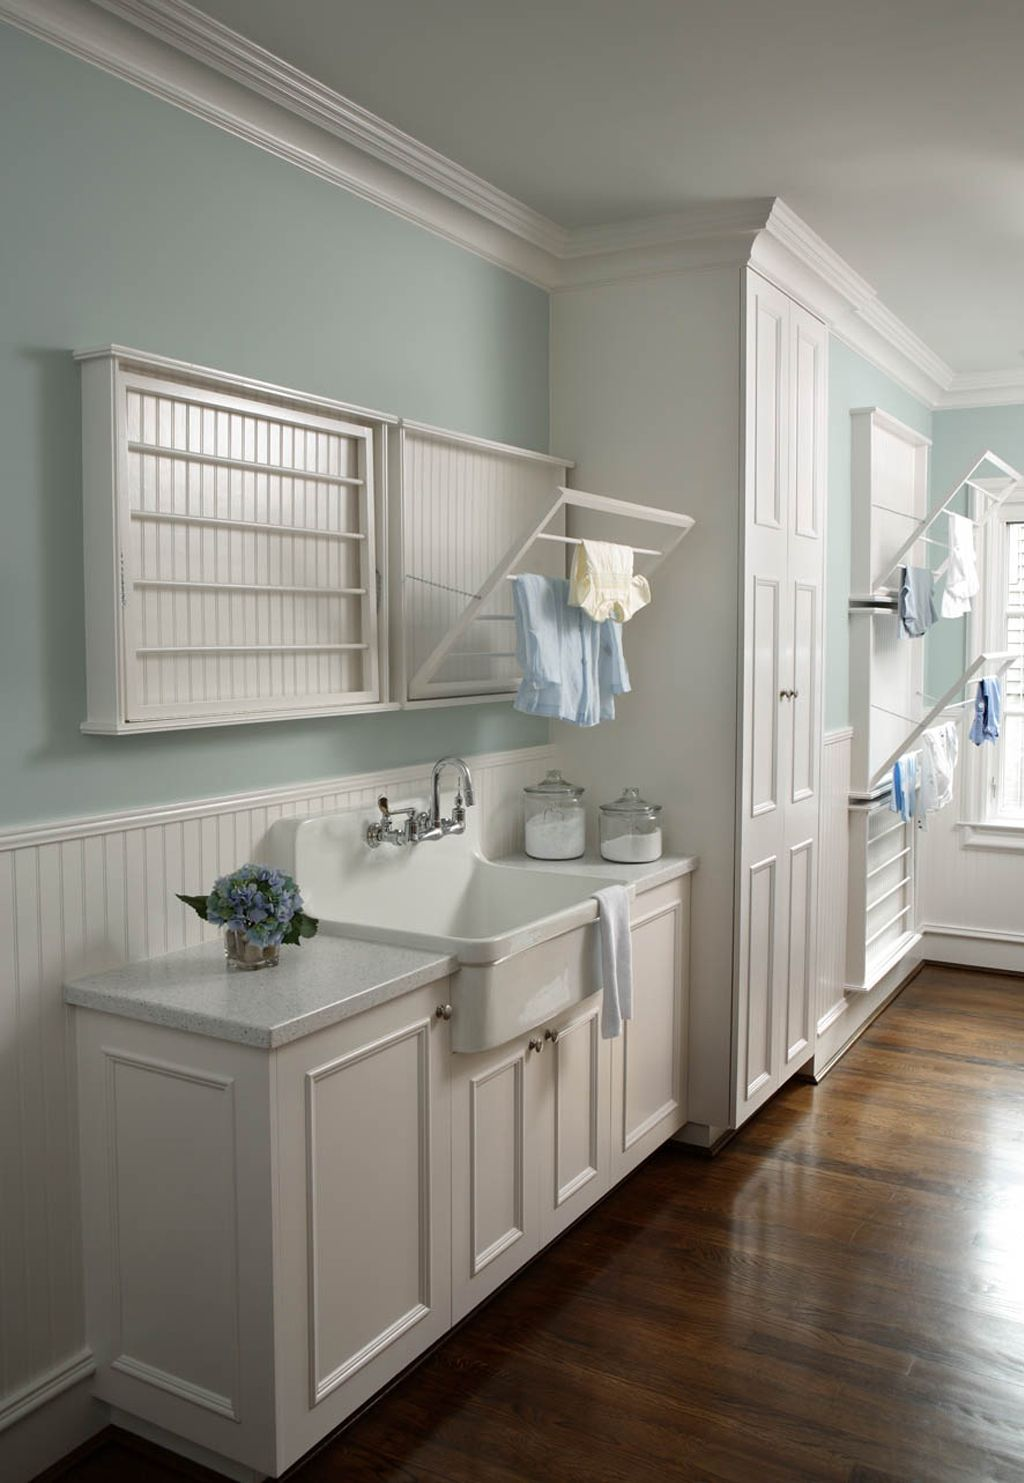 Laundry Room in Rainwashed also by Raubaut Design Associates. Chis Little Photography.